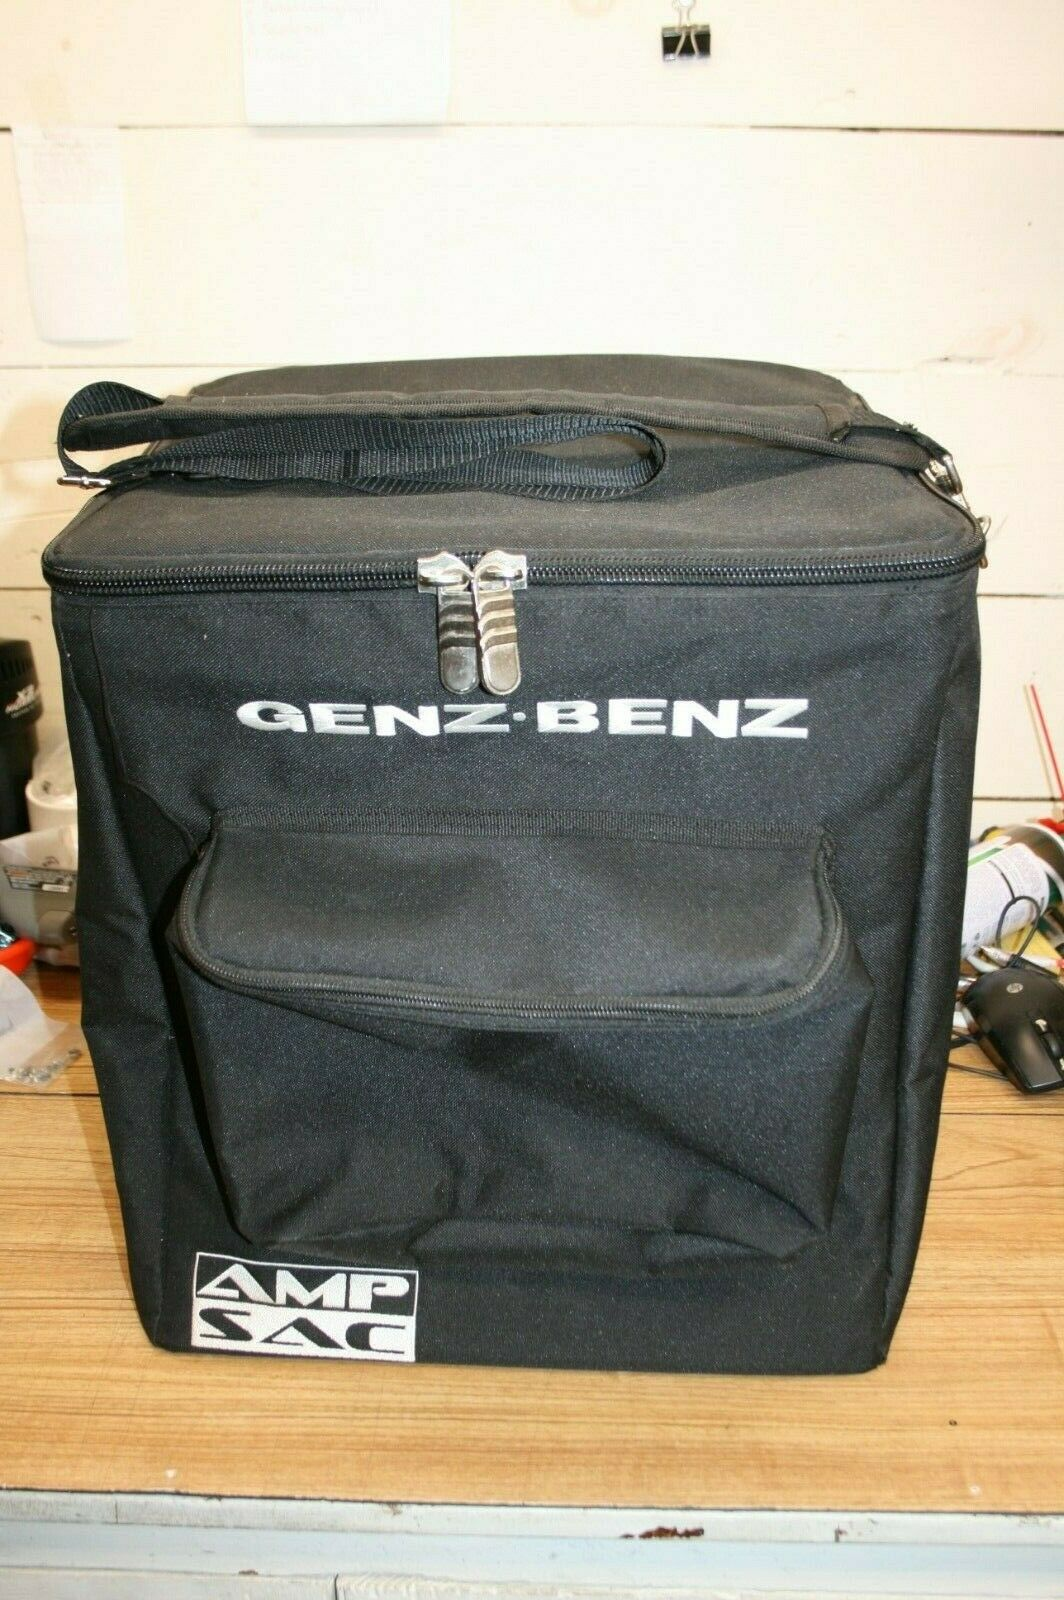 Genz Benz AMP-SAC-LG_11558 GB CARRY BAG  CPK10 - STL3.0